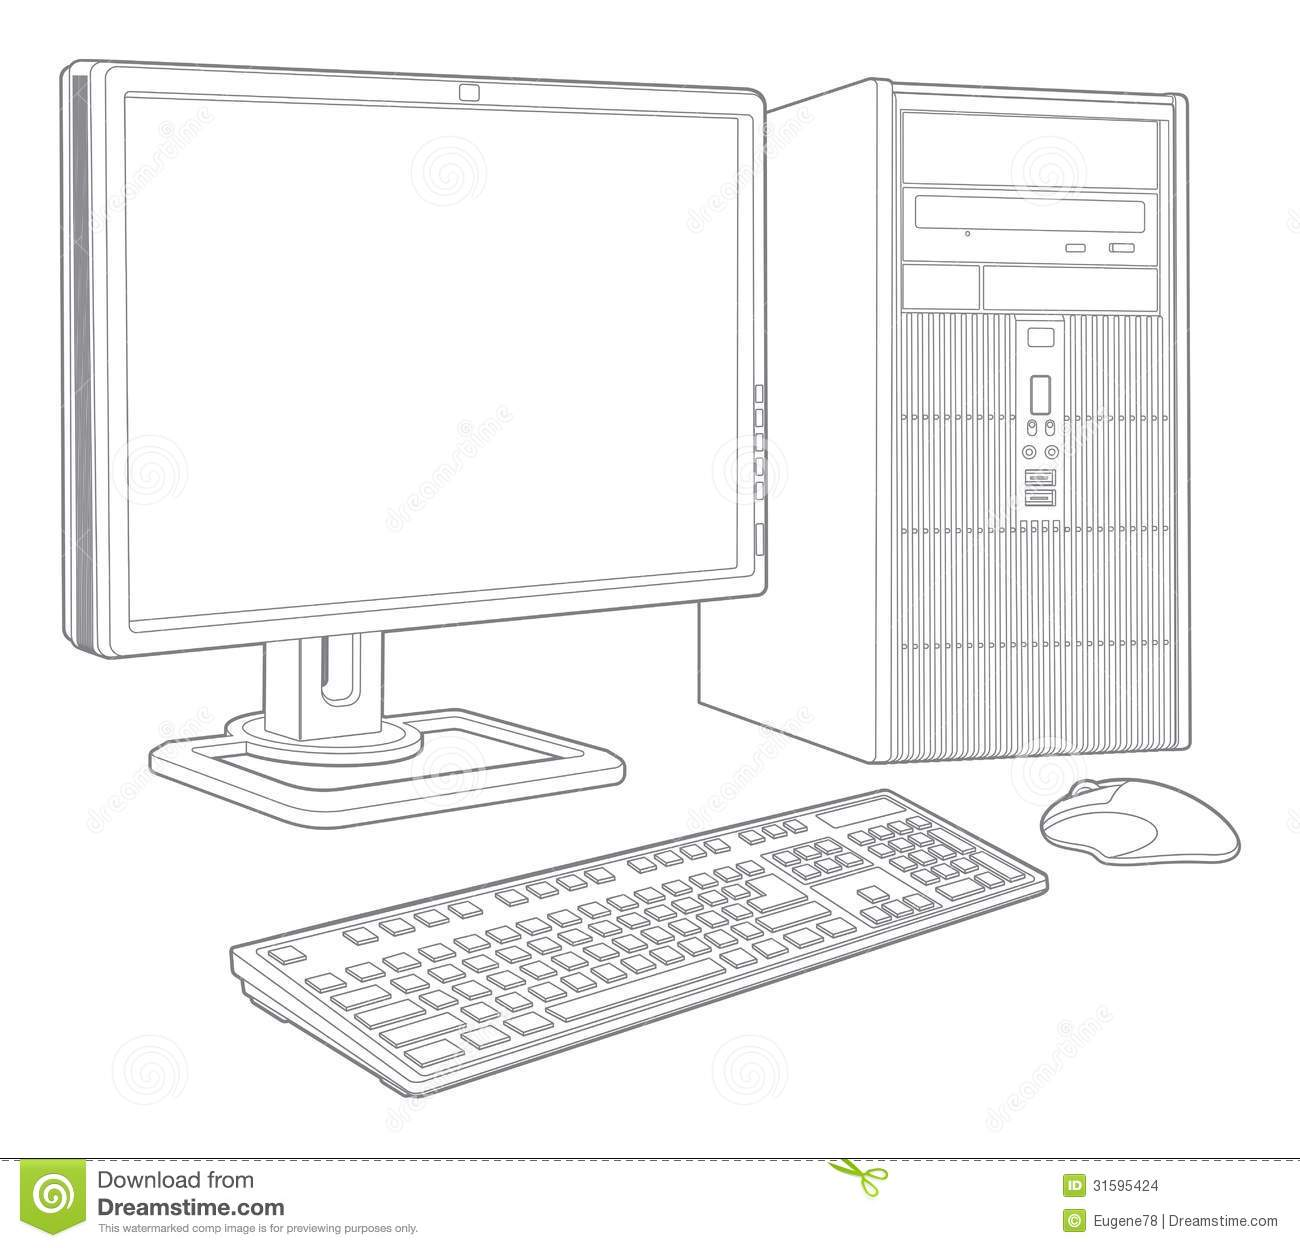 Computer System Stock Images - Image: 31595424